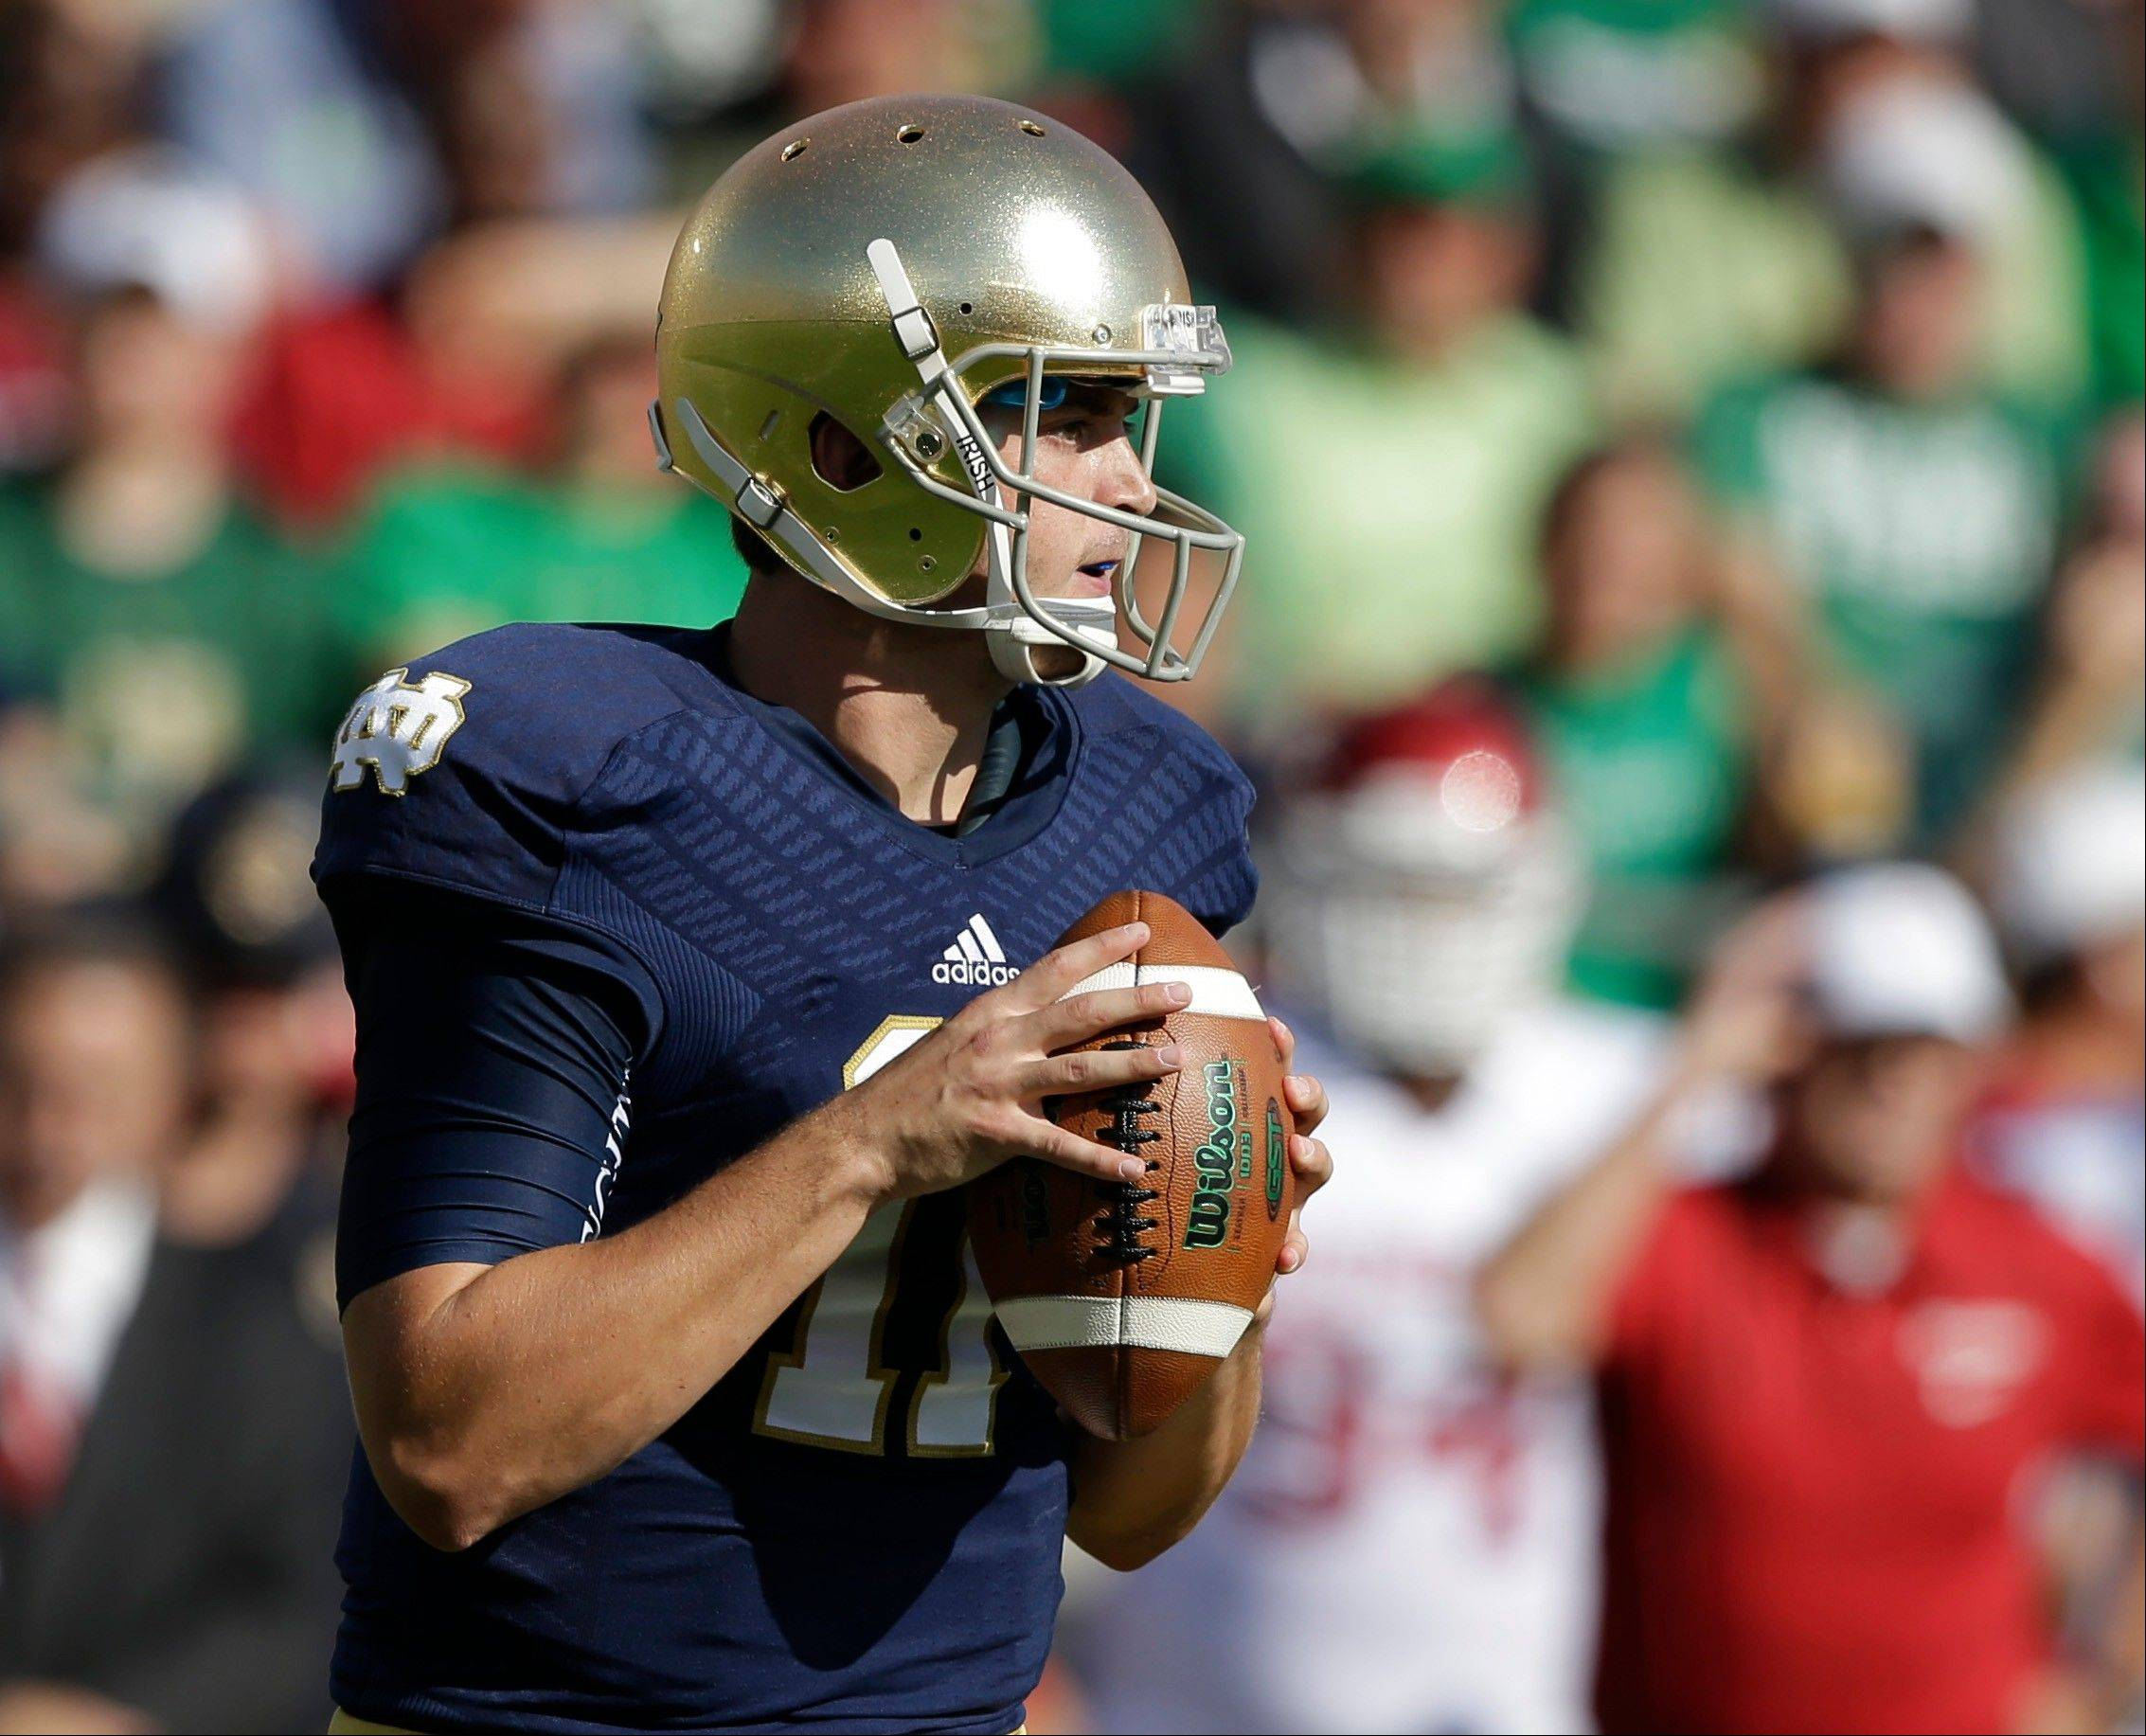 Notre Dame's Tommy Rees (11) looks to throw during the game against Oklahoma Saturday.